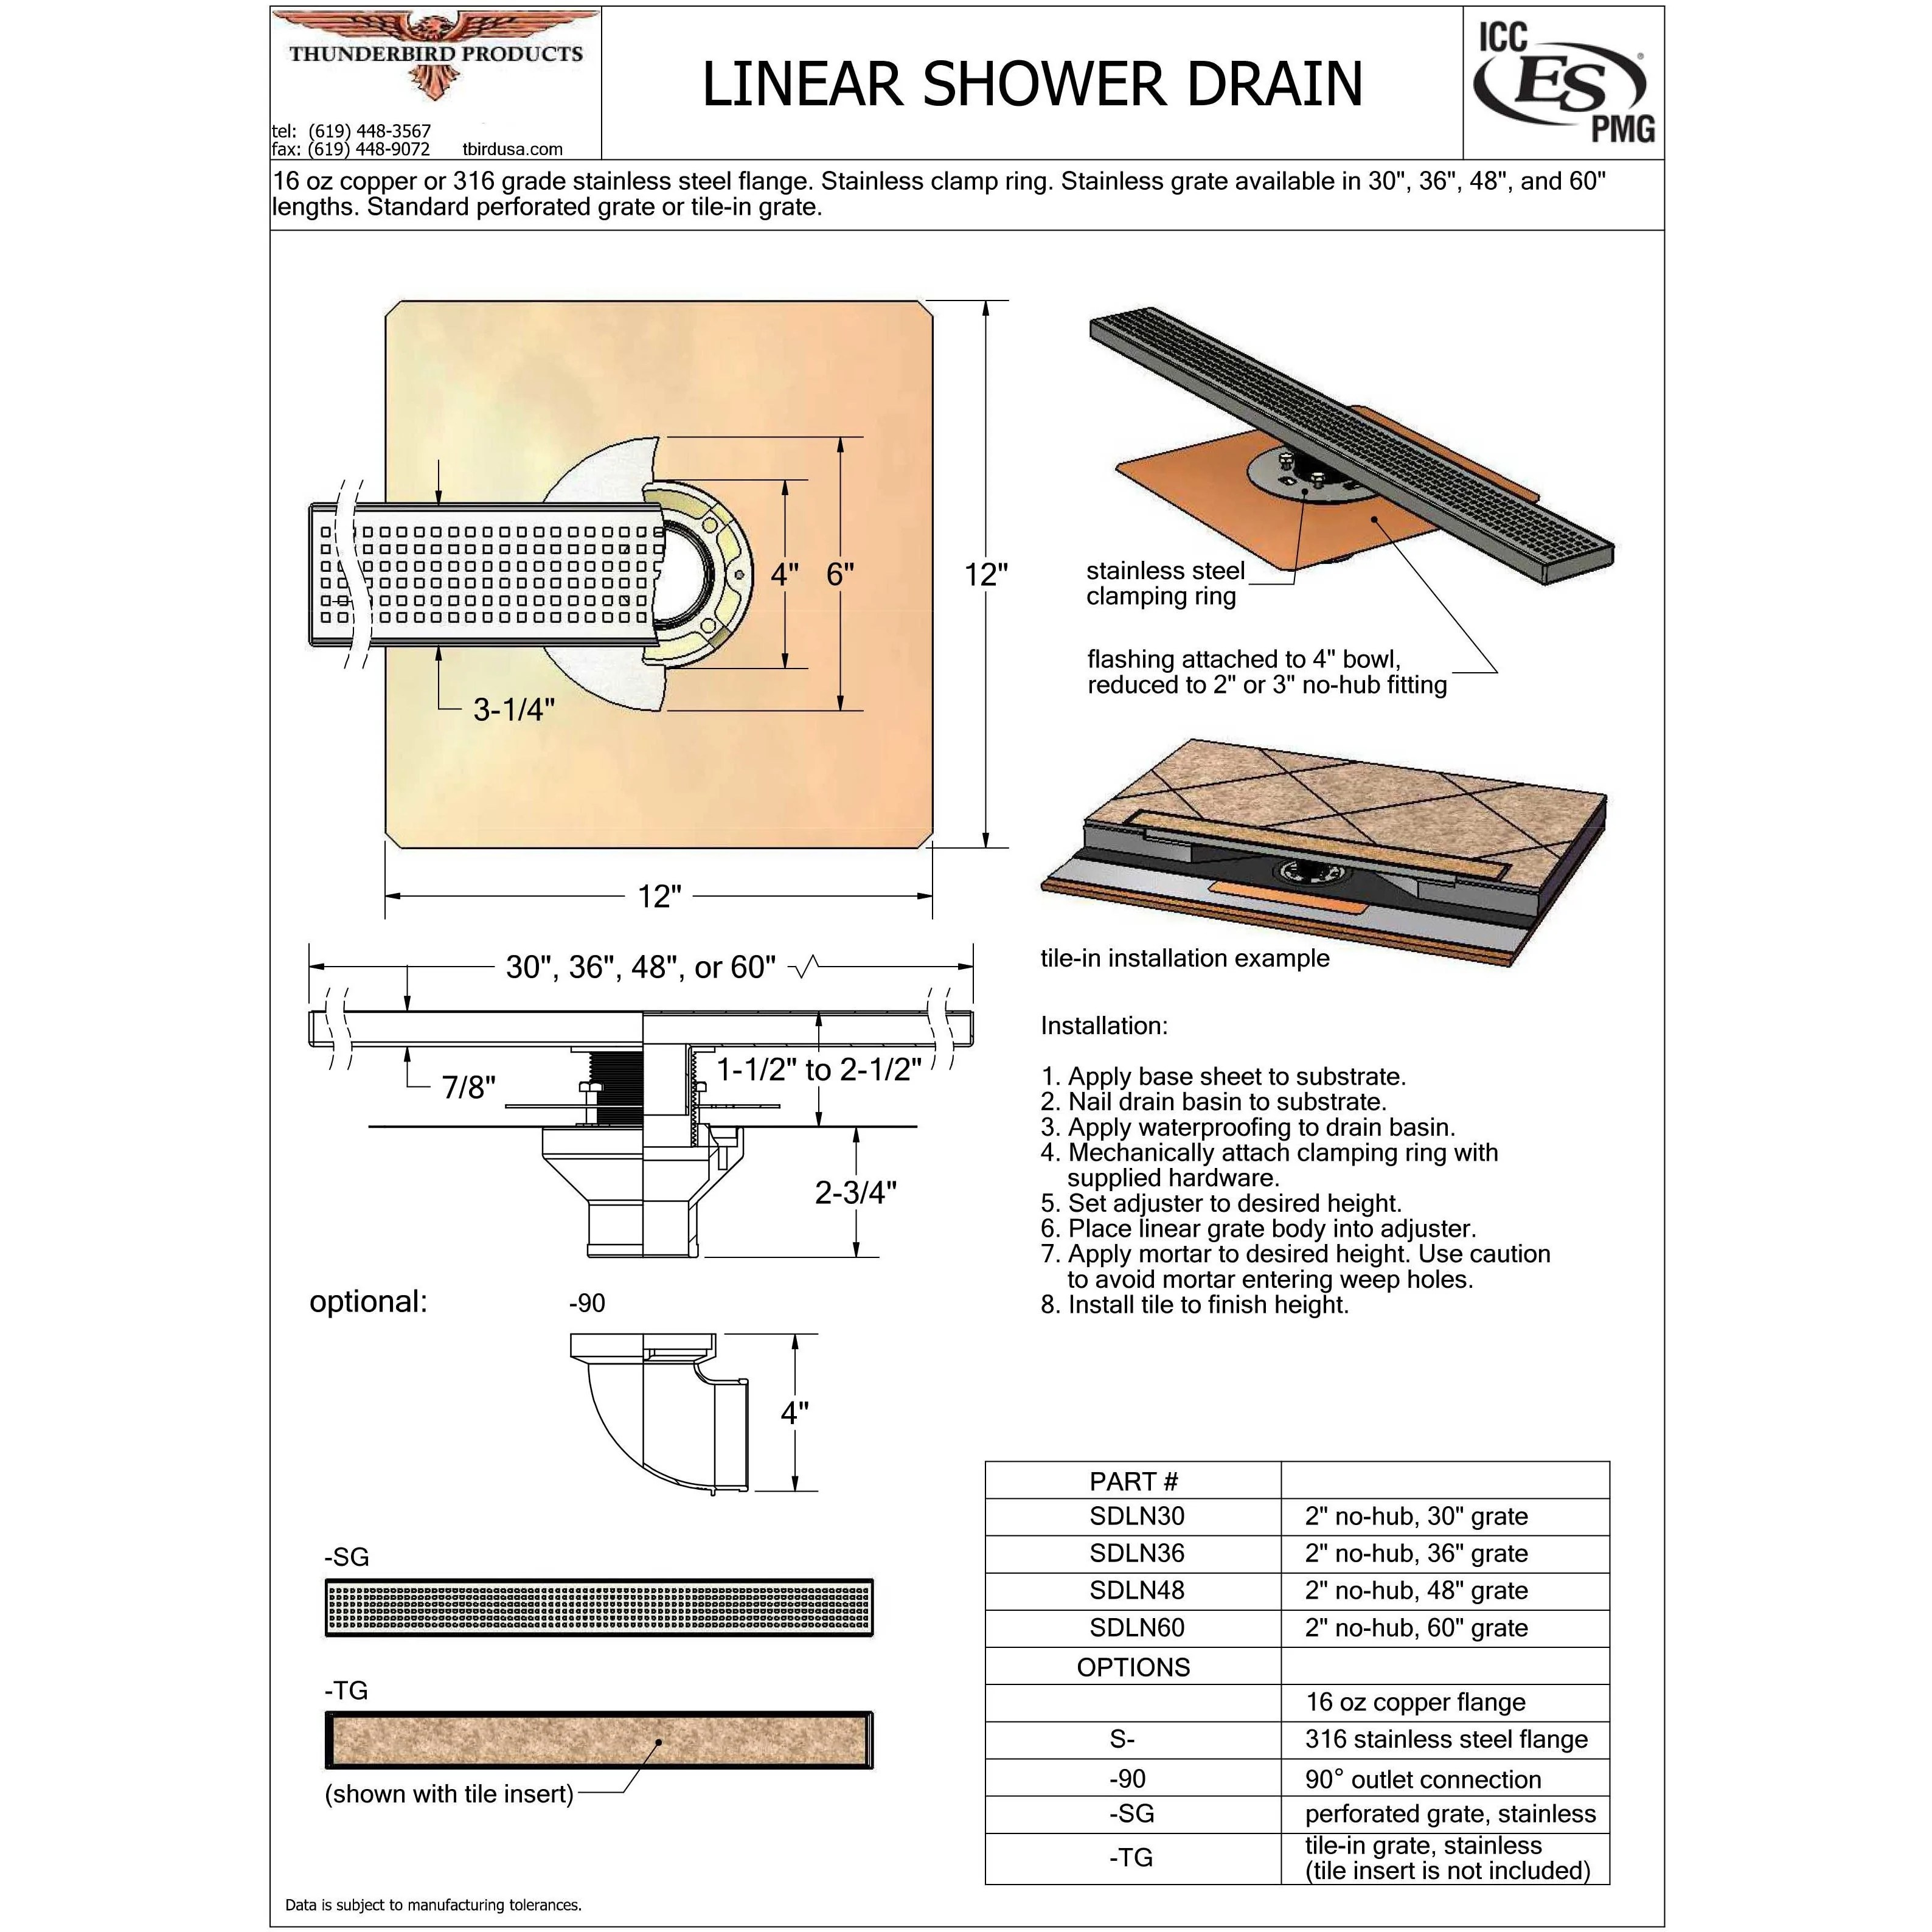 linear shower drain with copper drain body